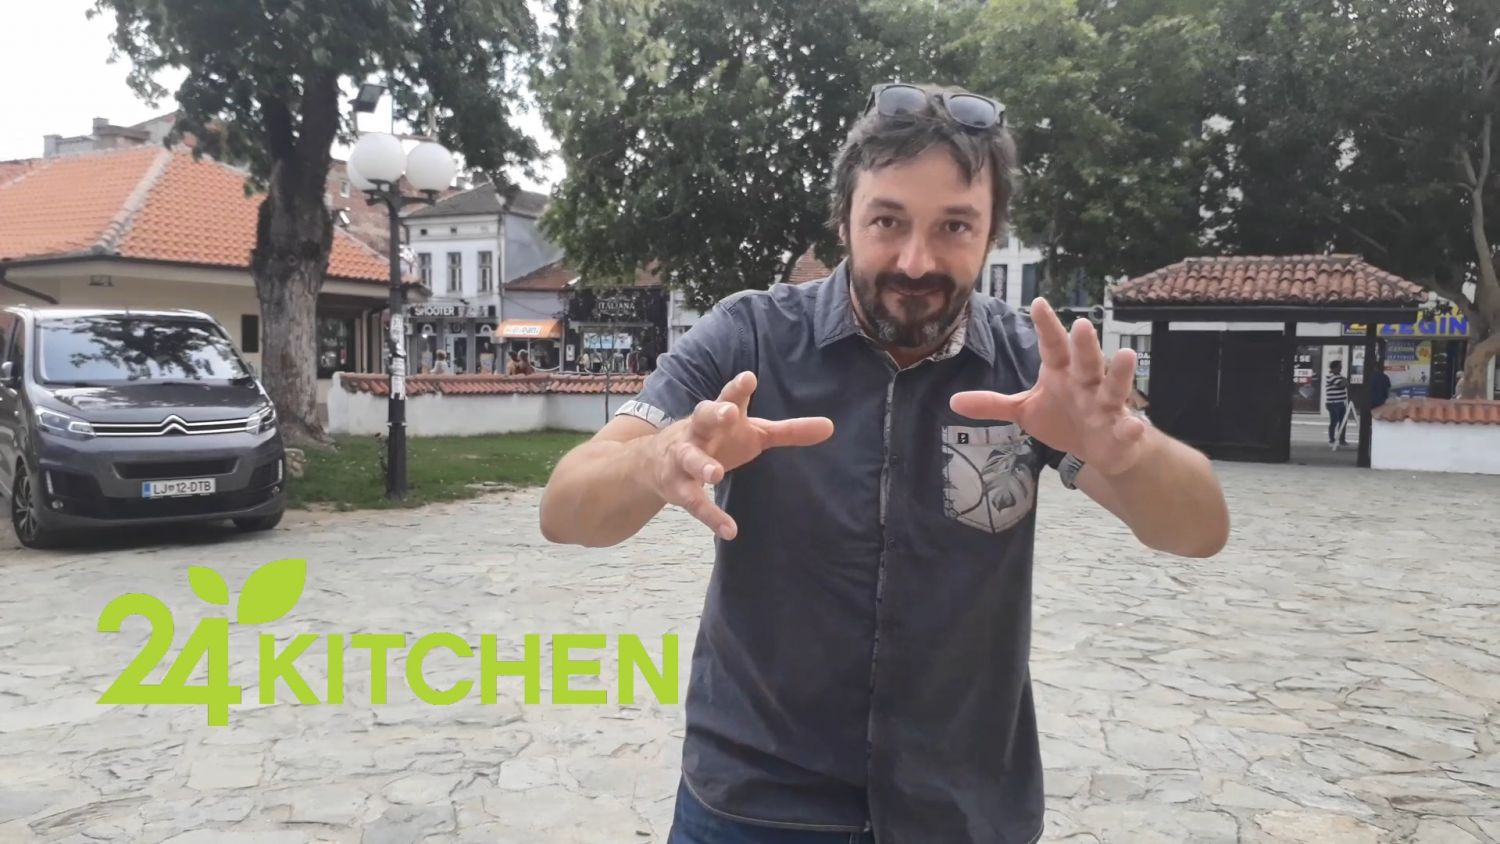 24KITCHEN snima u Leskovcu (VIDEO)